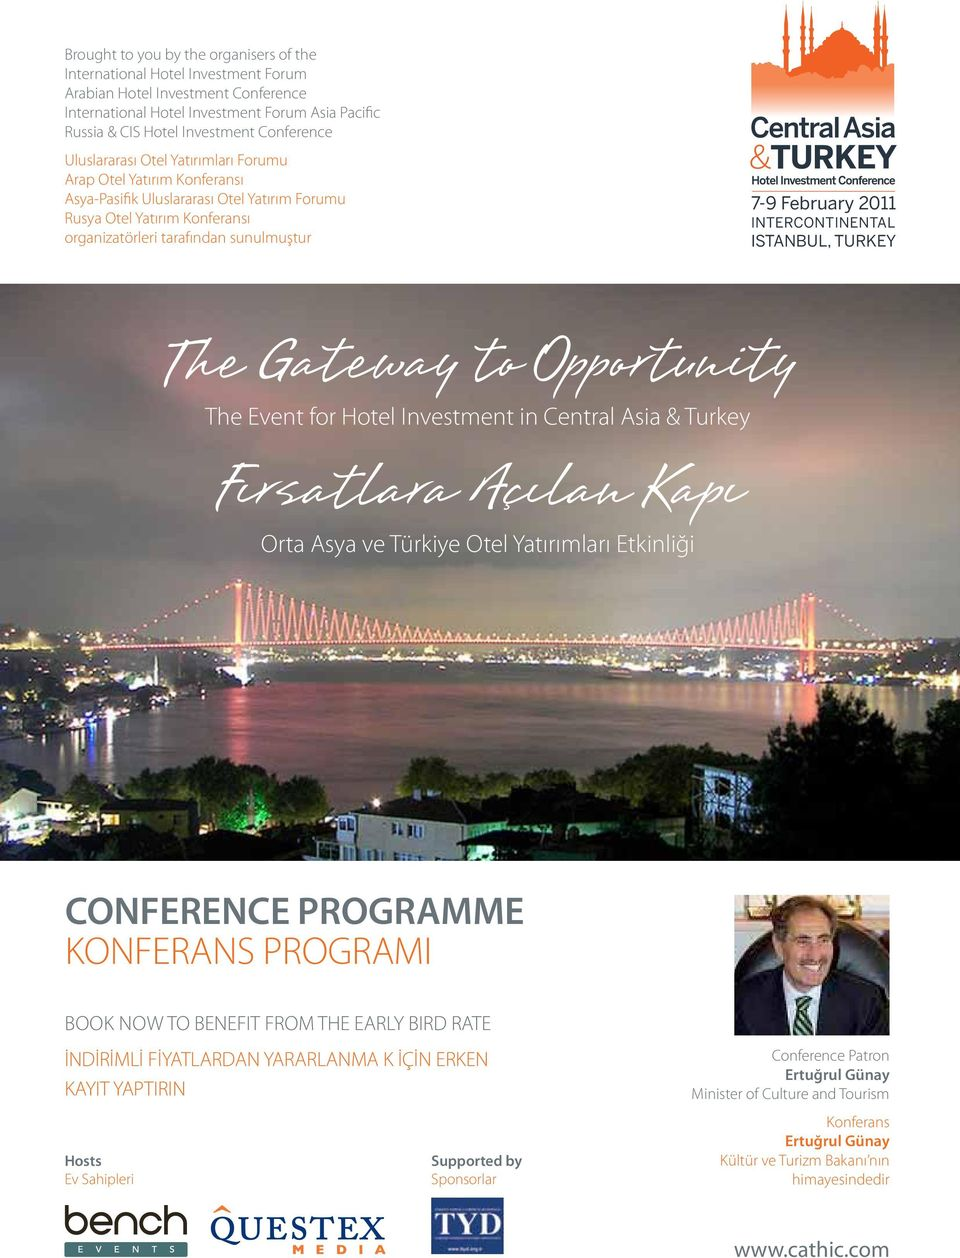 February 2011 INTERCONTINENTAL ISTANBUL, TURKEY The Gateway to Opportunity The Event for Hotel Investment in Central Asia & Turkey Fırsatlara Açılan Kapı Orta Asya ve Türkiye Otel Yatırımları